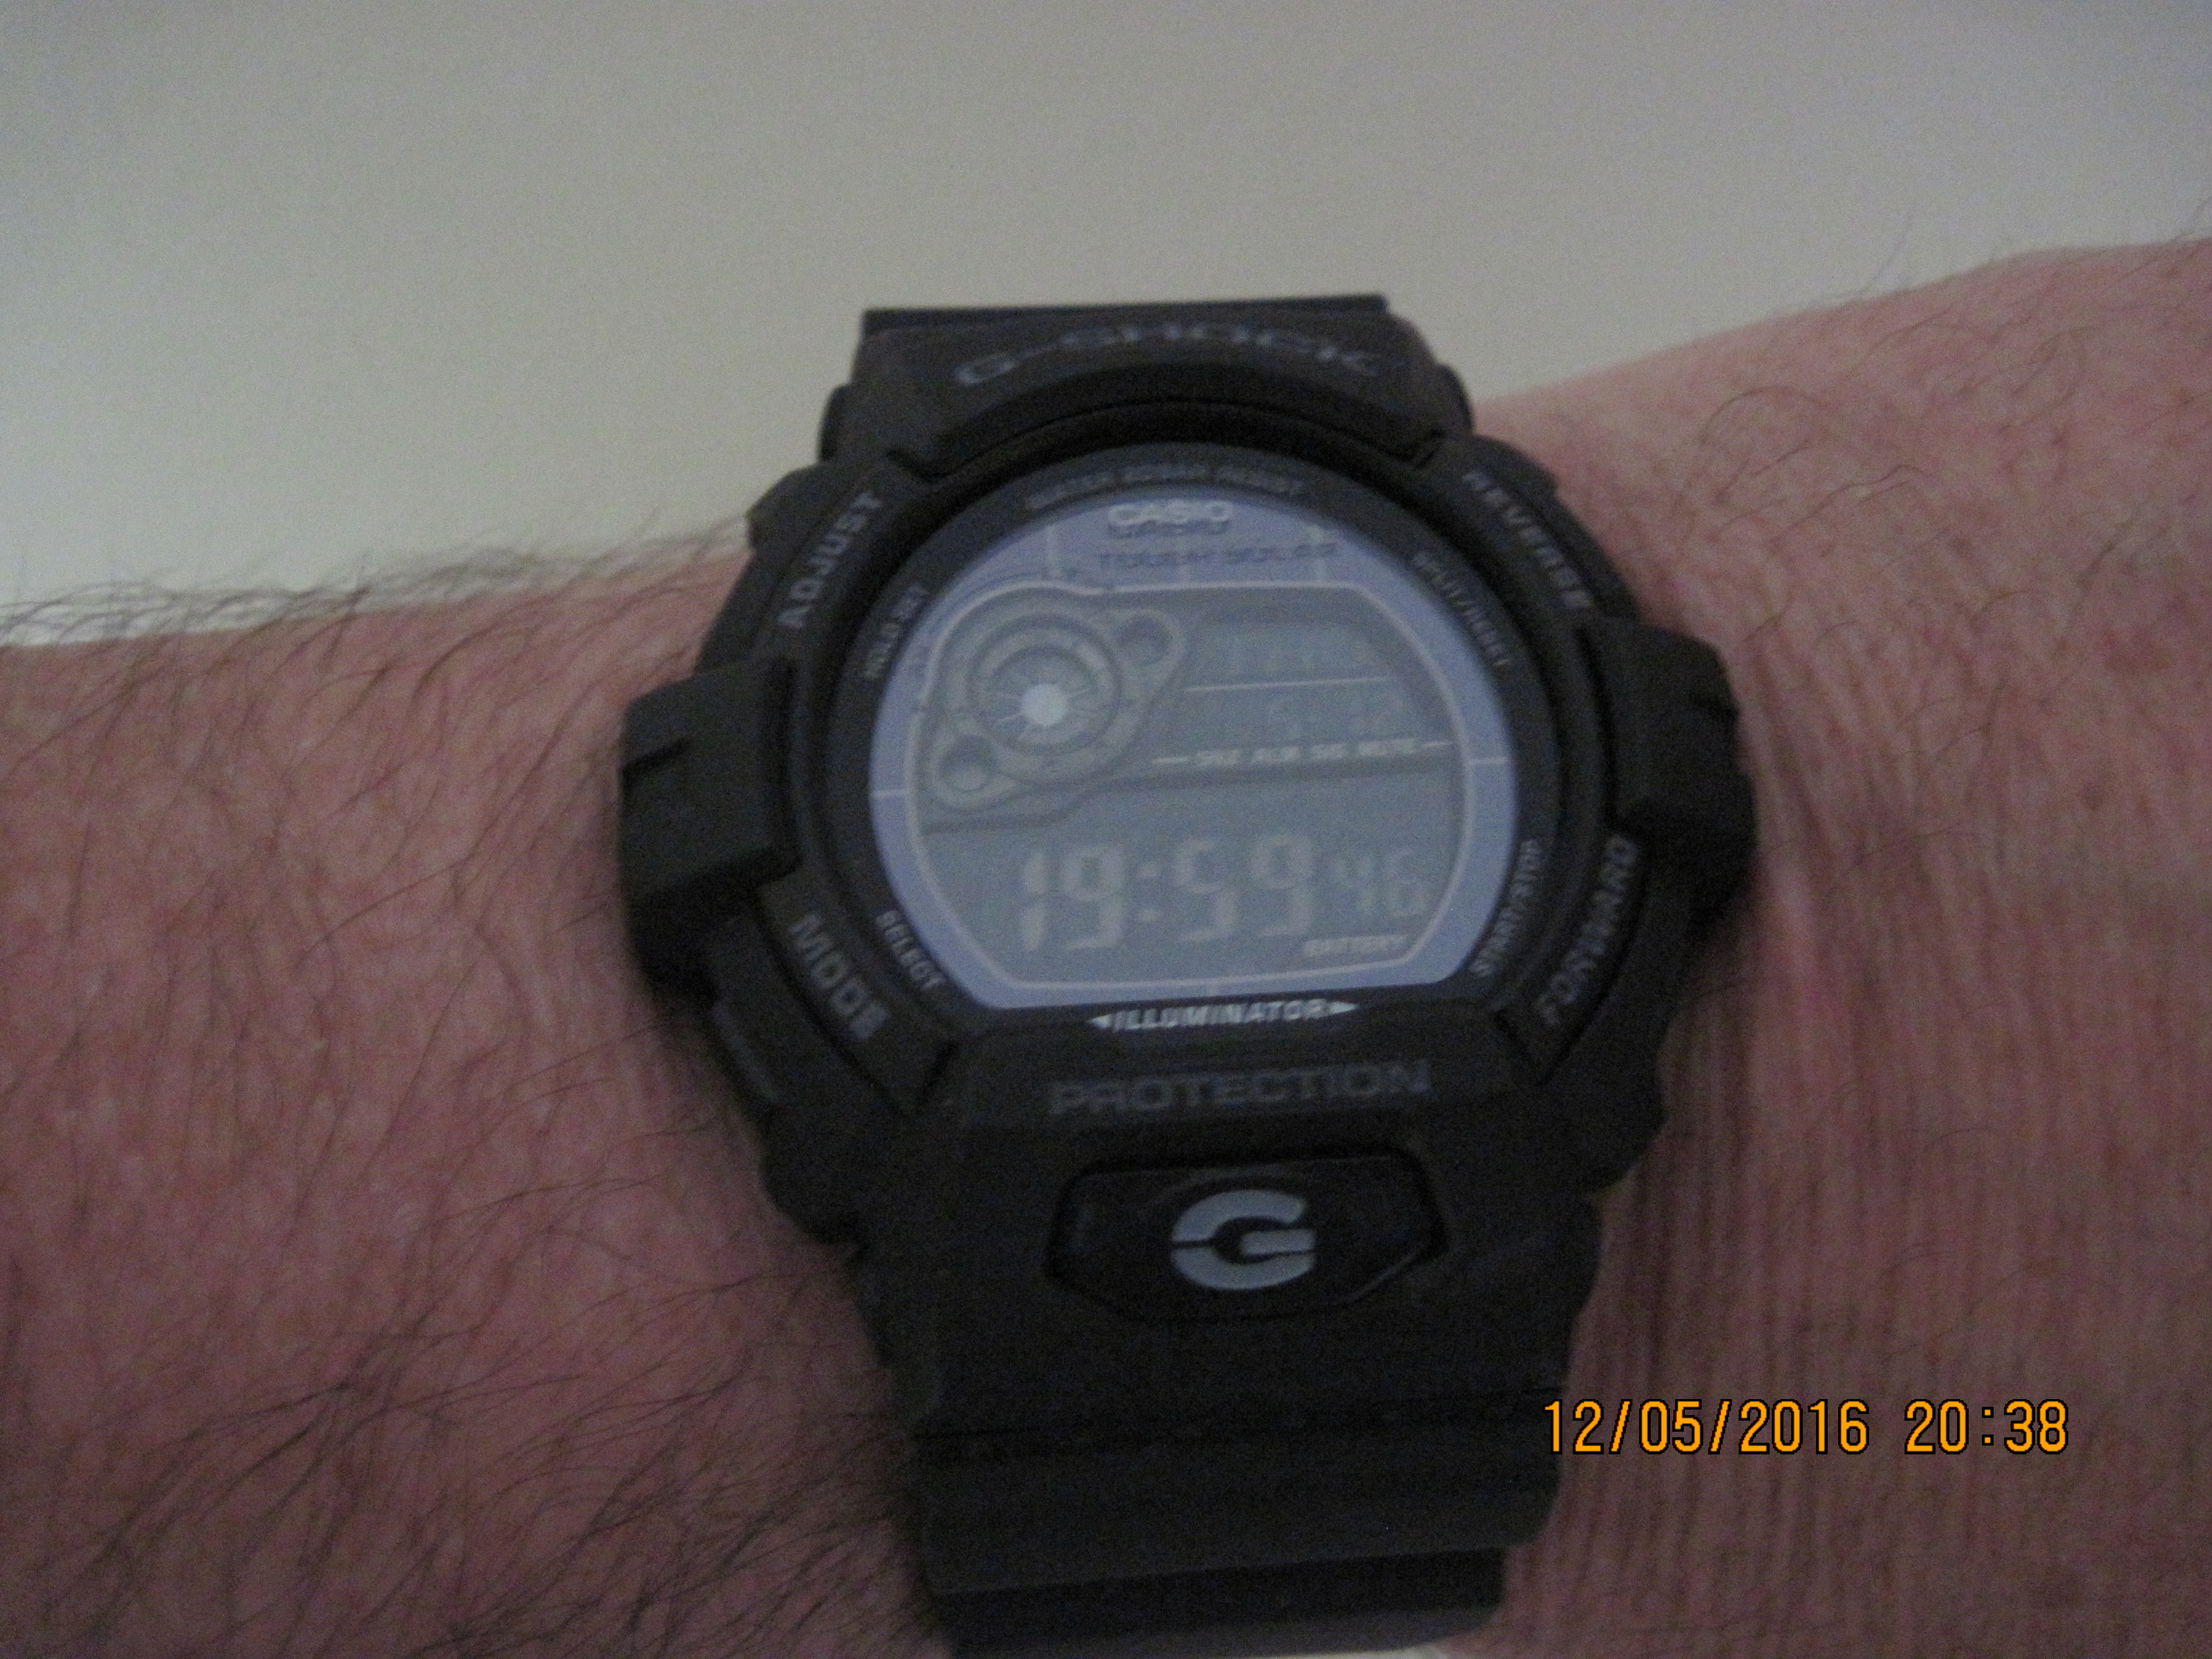 bf4672c18bd9 The Casio G-Shock Alarm Chronograph Watch GR-8900A-1ER is absolutely  superb. I have been after a replacement Casio G-Shock watch for some time  and when I ...